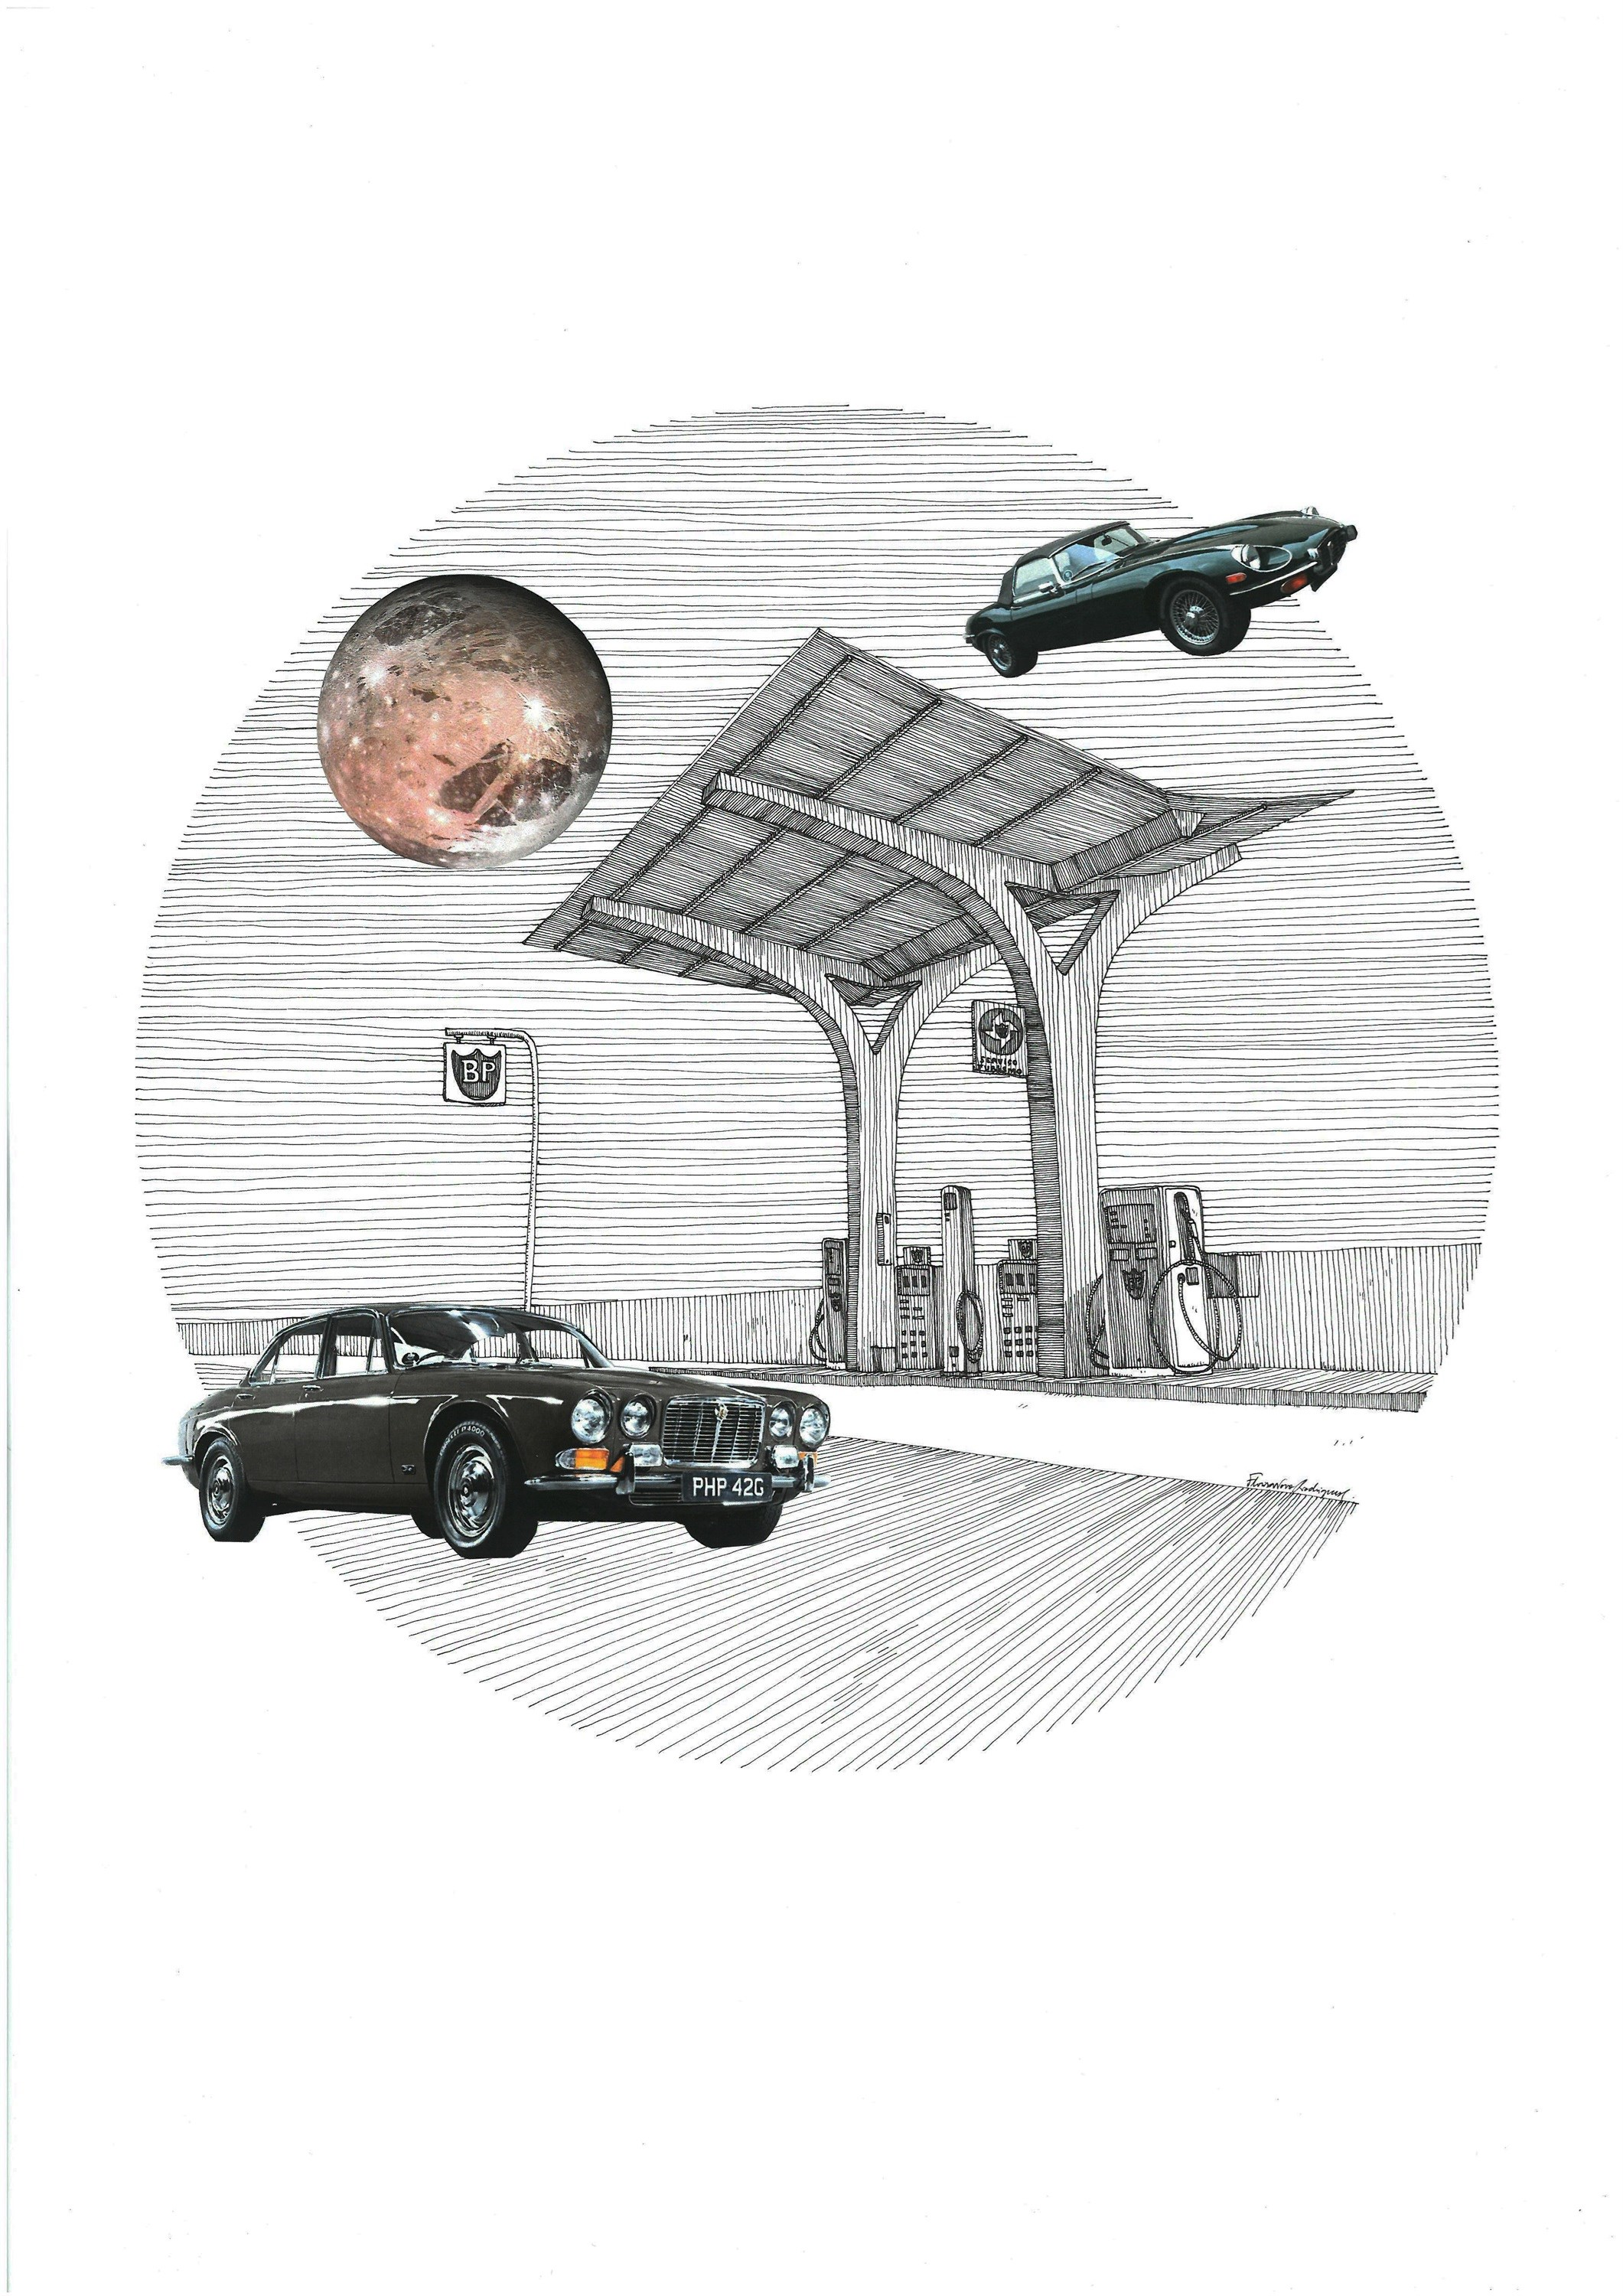 Citroen ID, original Architecture Collage Drawing and Illustration by Florisa Novo Rodrigues